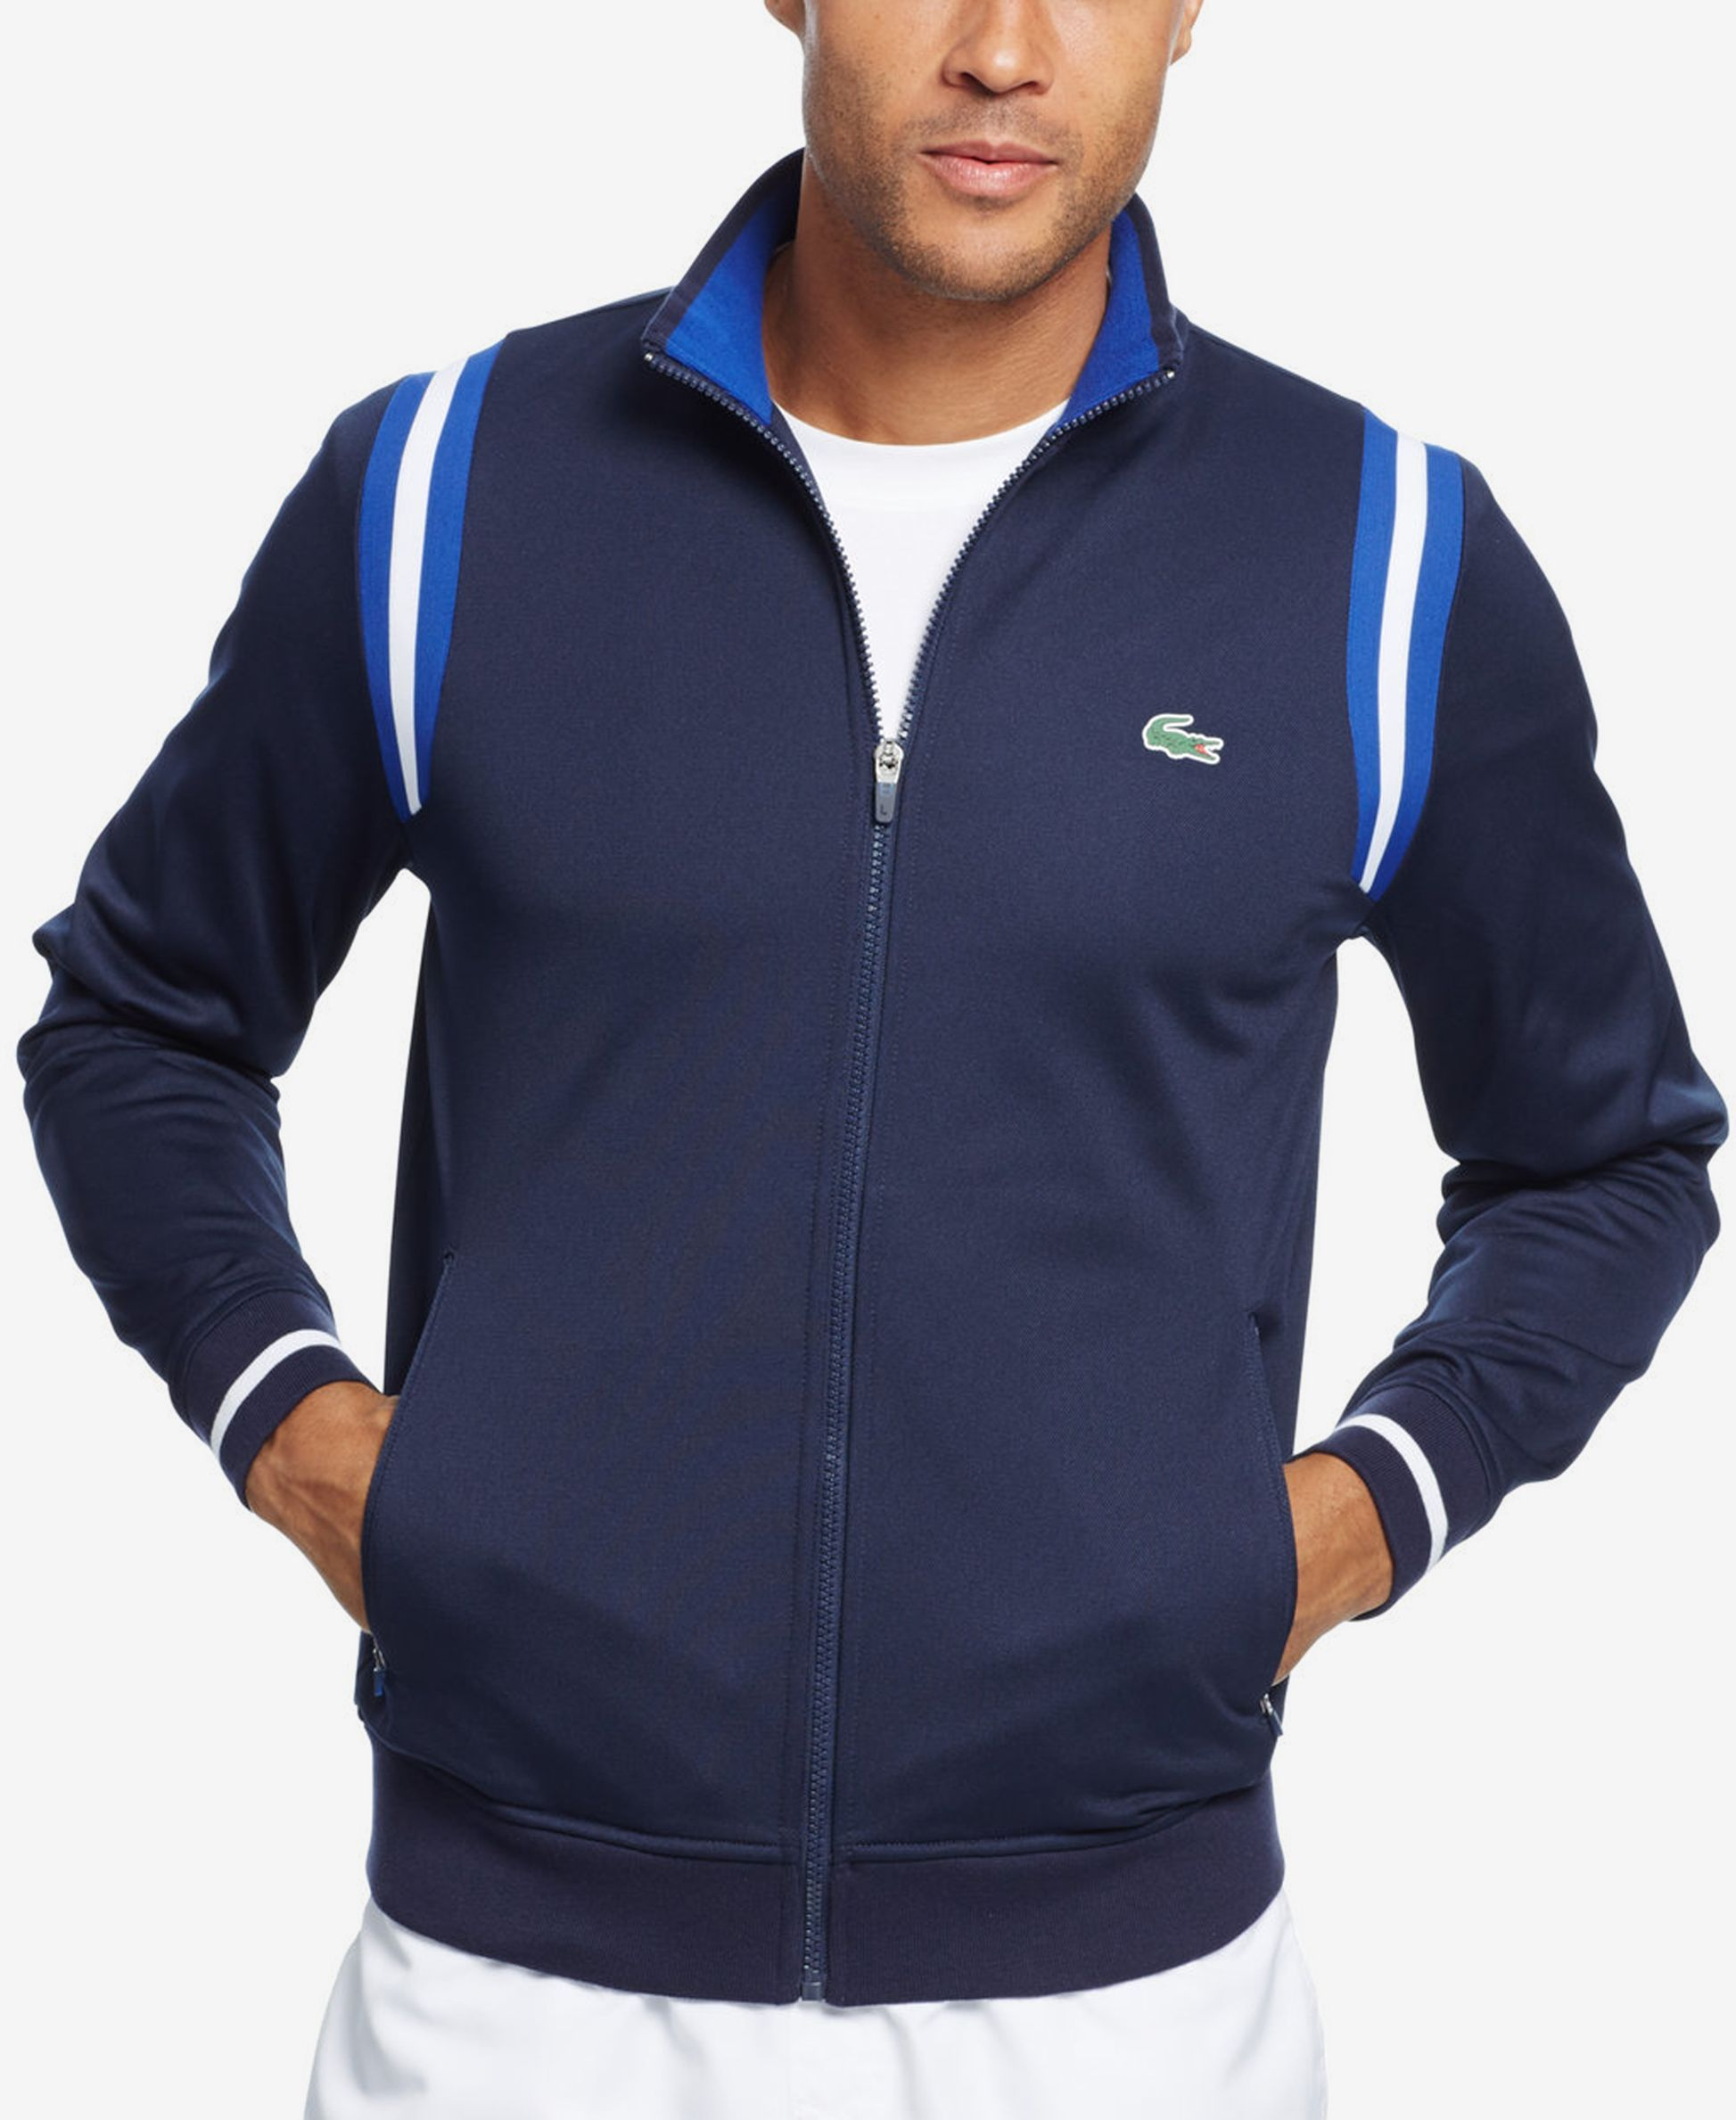 379984a82c Lacoste Men's Taped Track Jacket | Men's. | Lacoste, Lacoste men ...